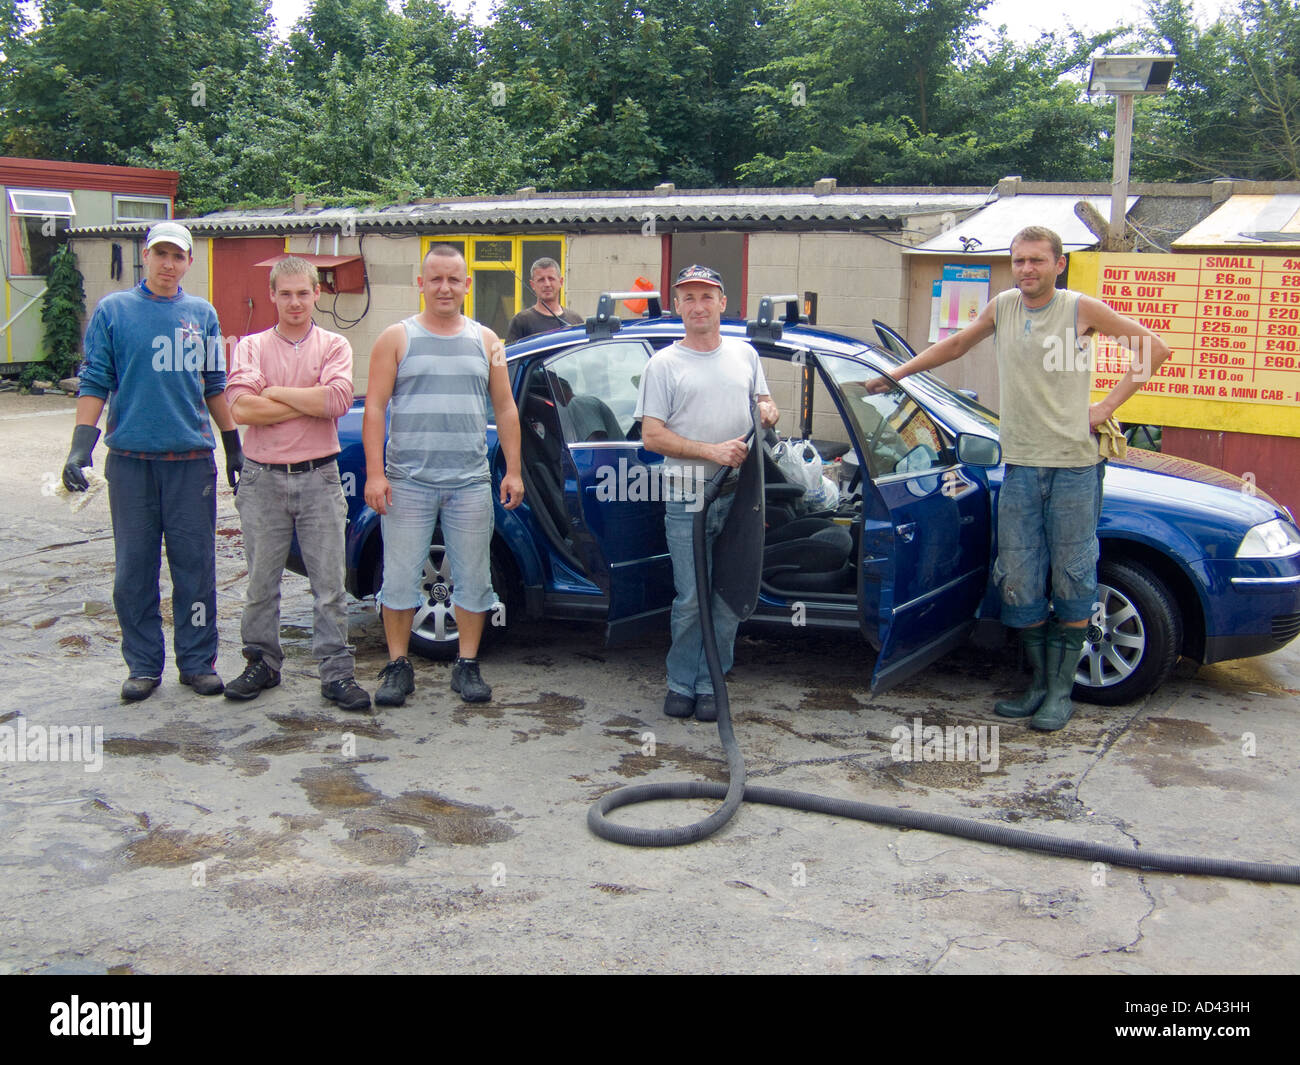 Local Car Wash >> The Team At The Local Hand Car Wash Stock Photo 13297852